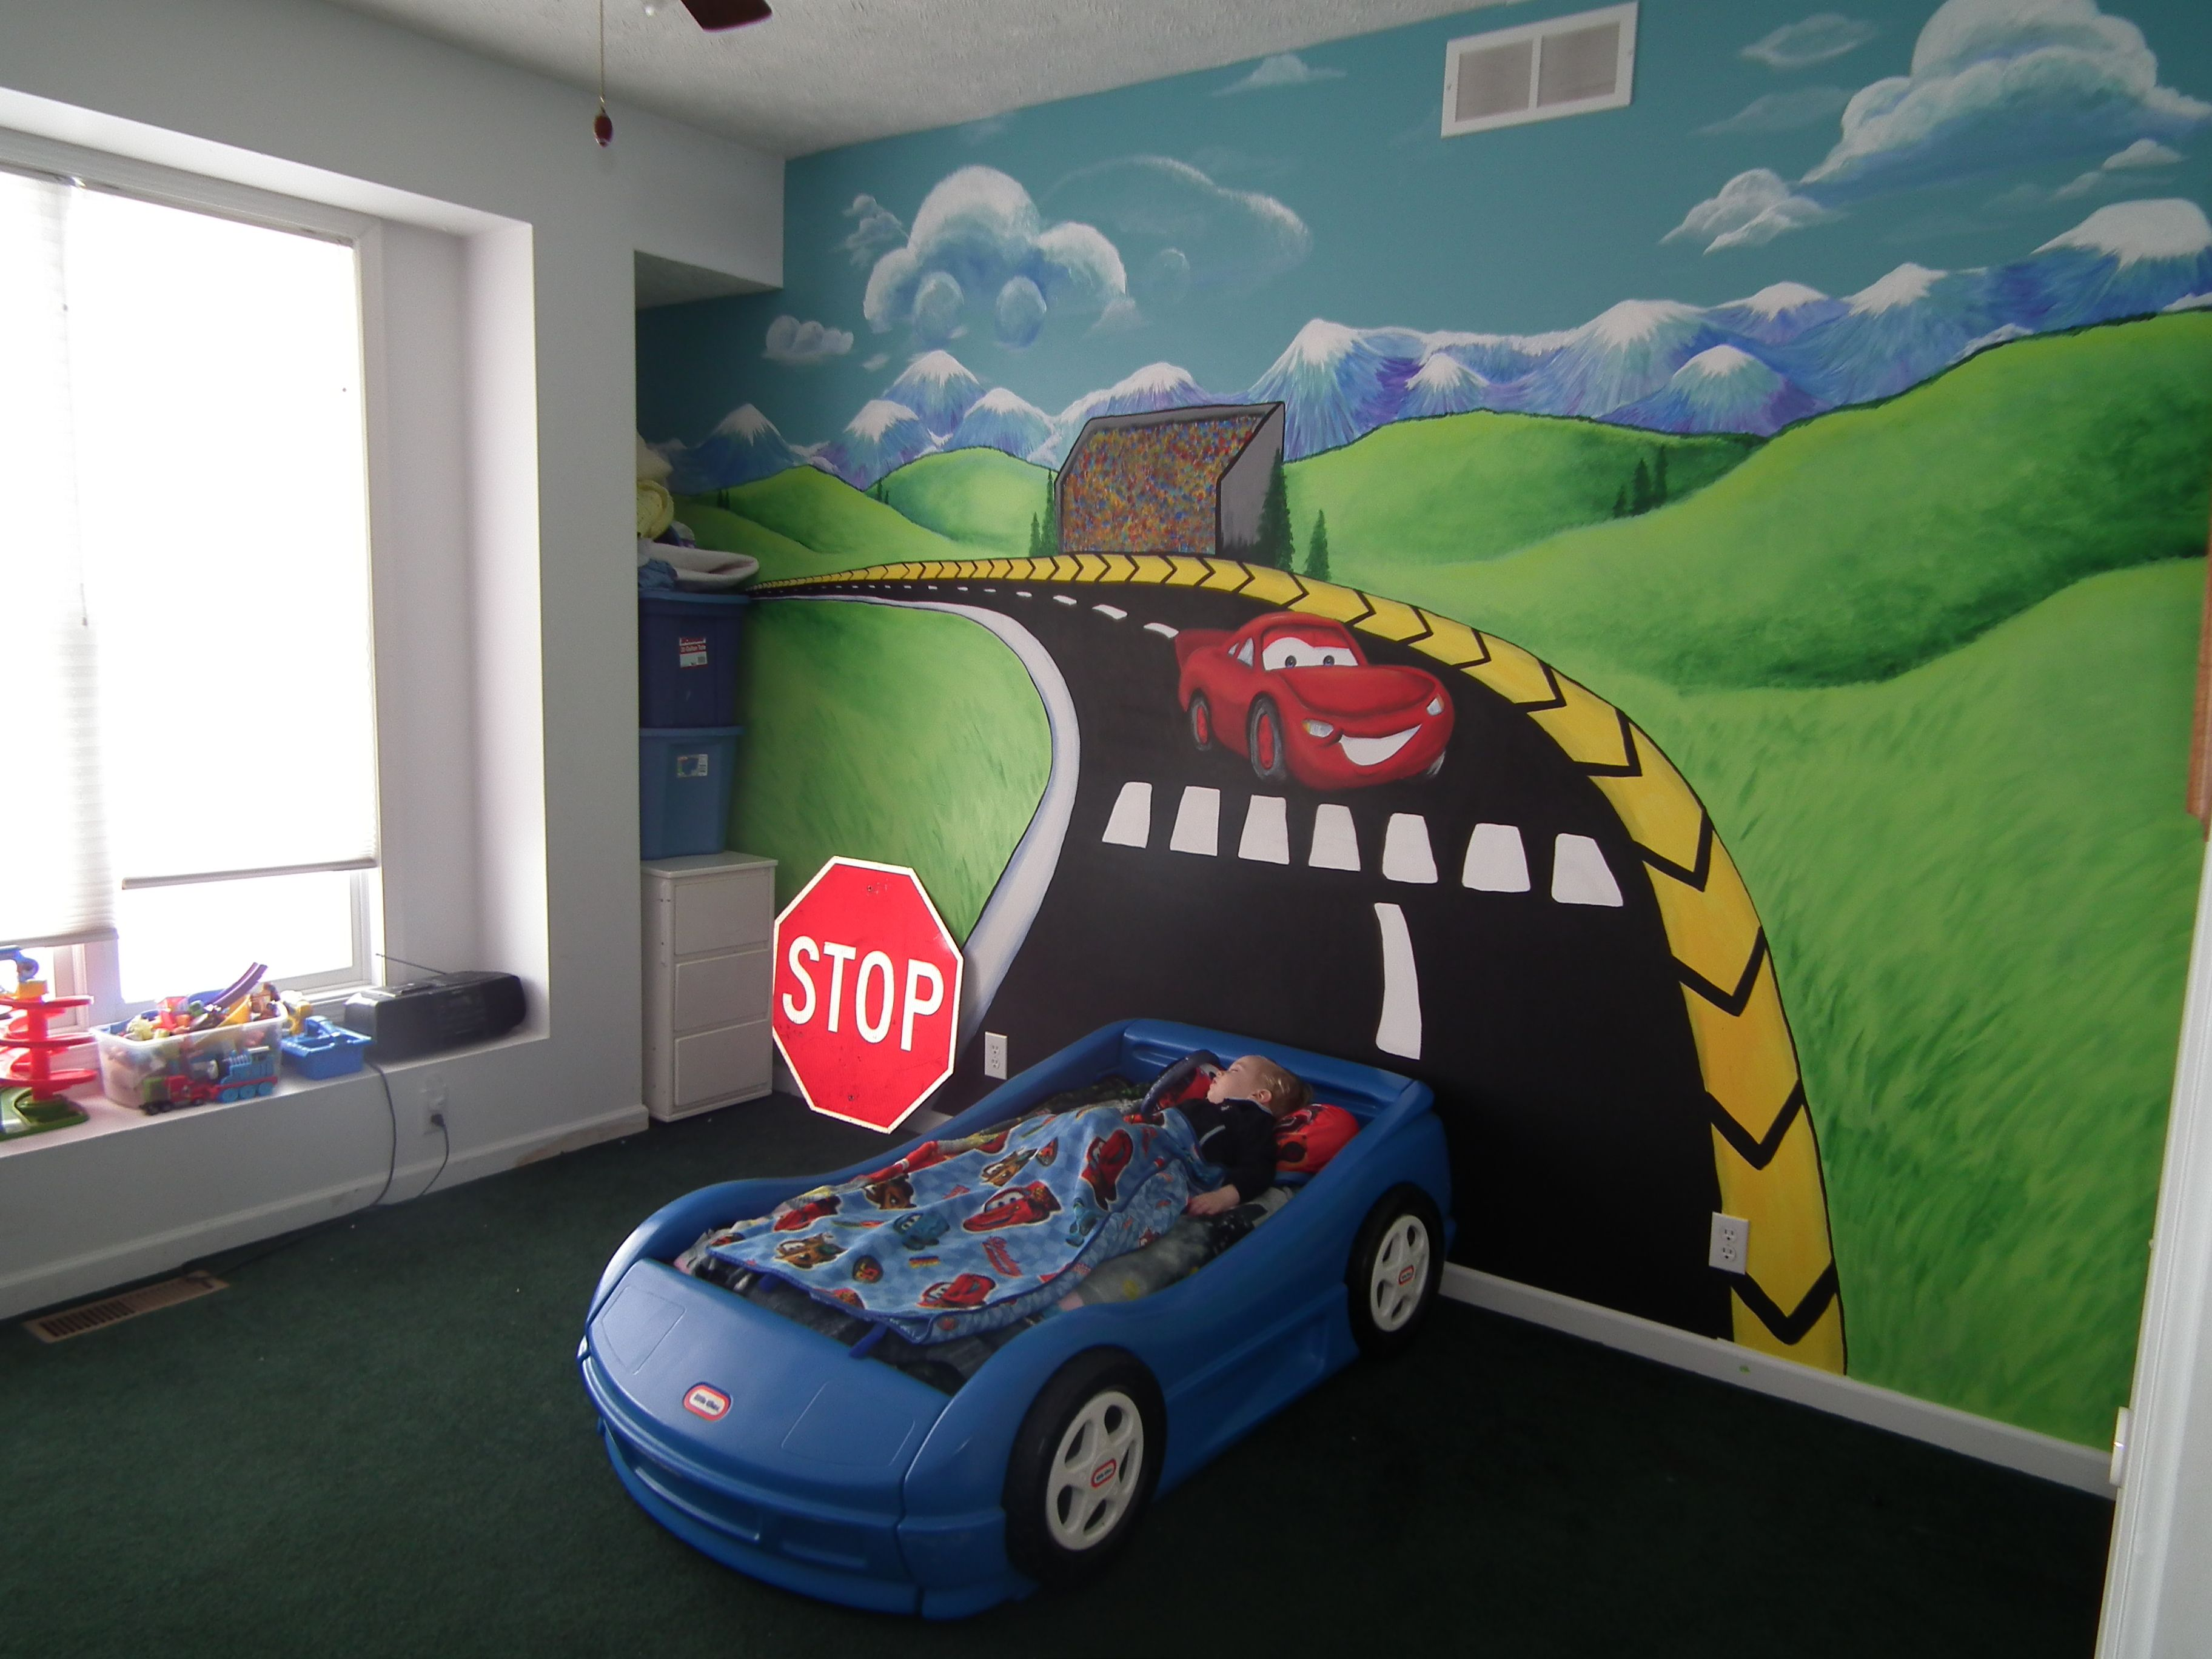 race car mural Cars Mural Coles Room ideas Pinterest Cars